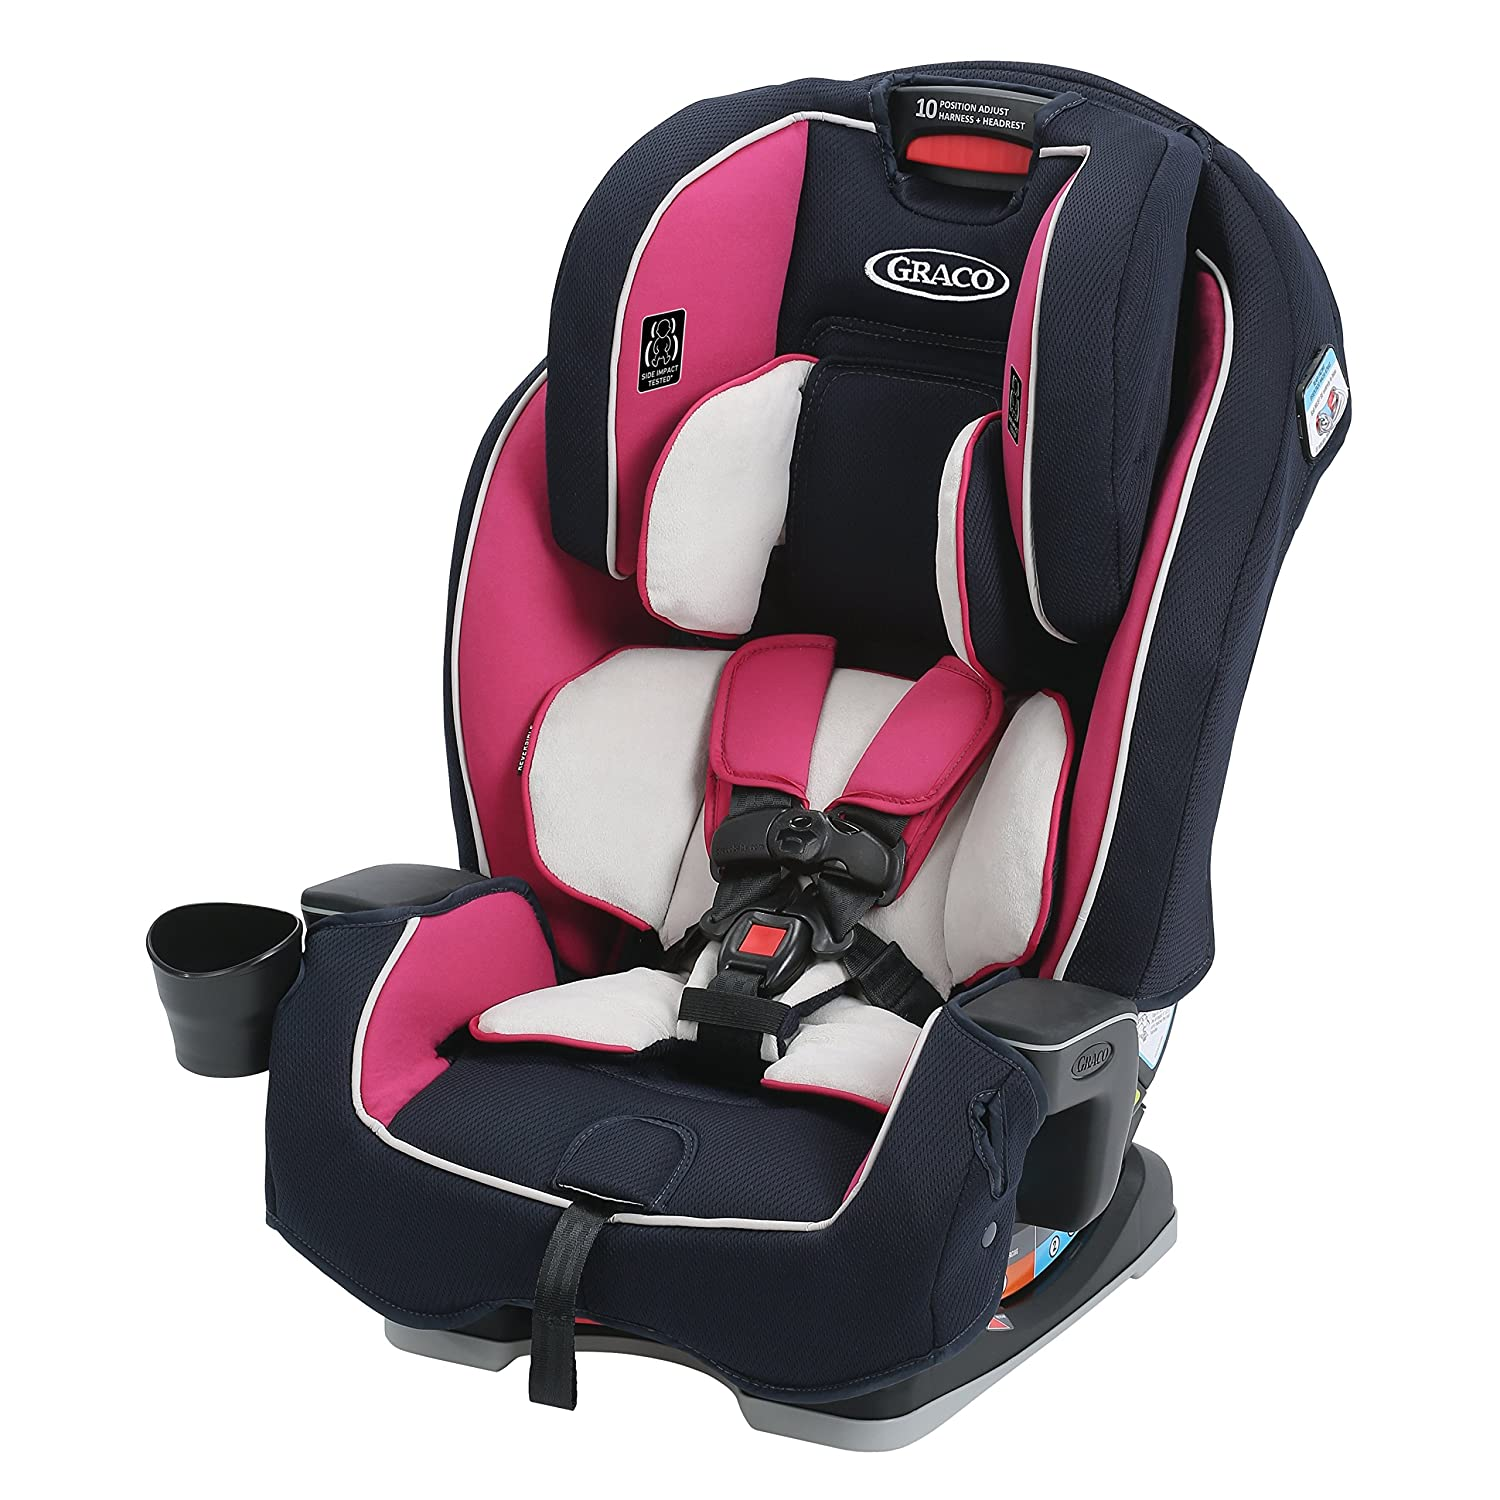 Graco Milestone All-in-1 ConvertibleCar Seat, Ayla, One Size